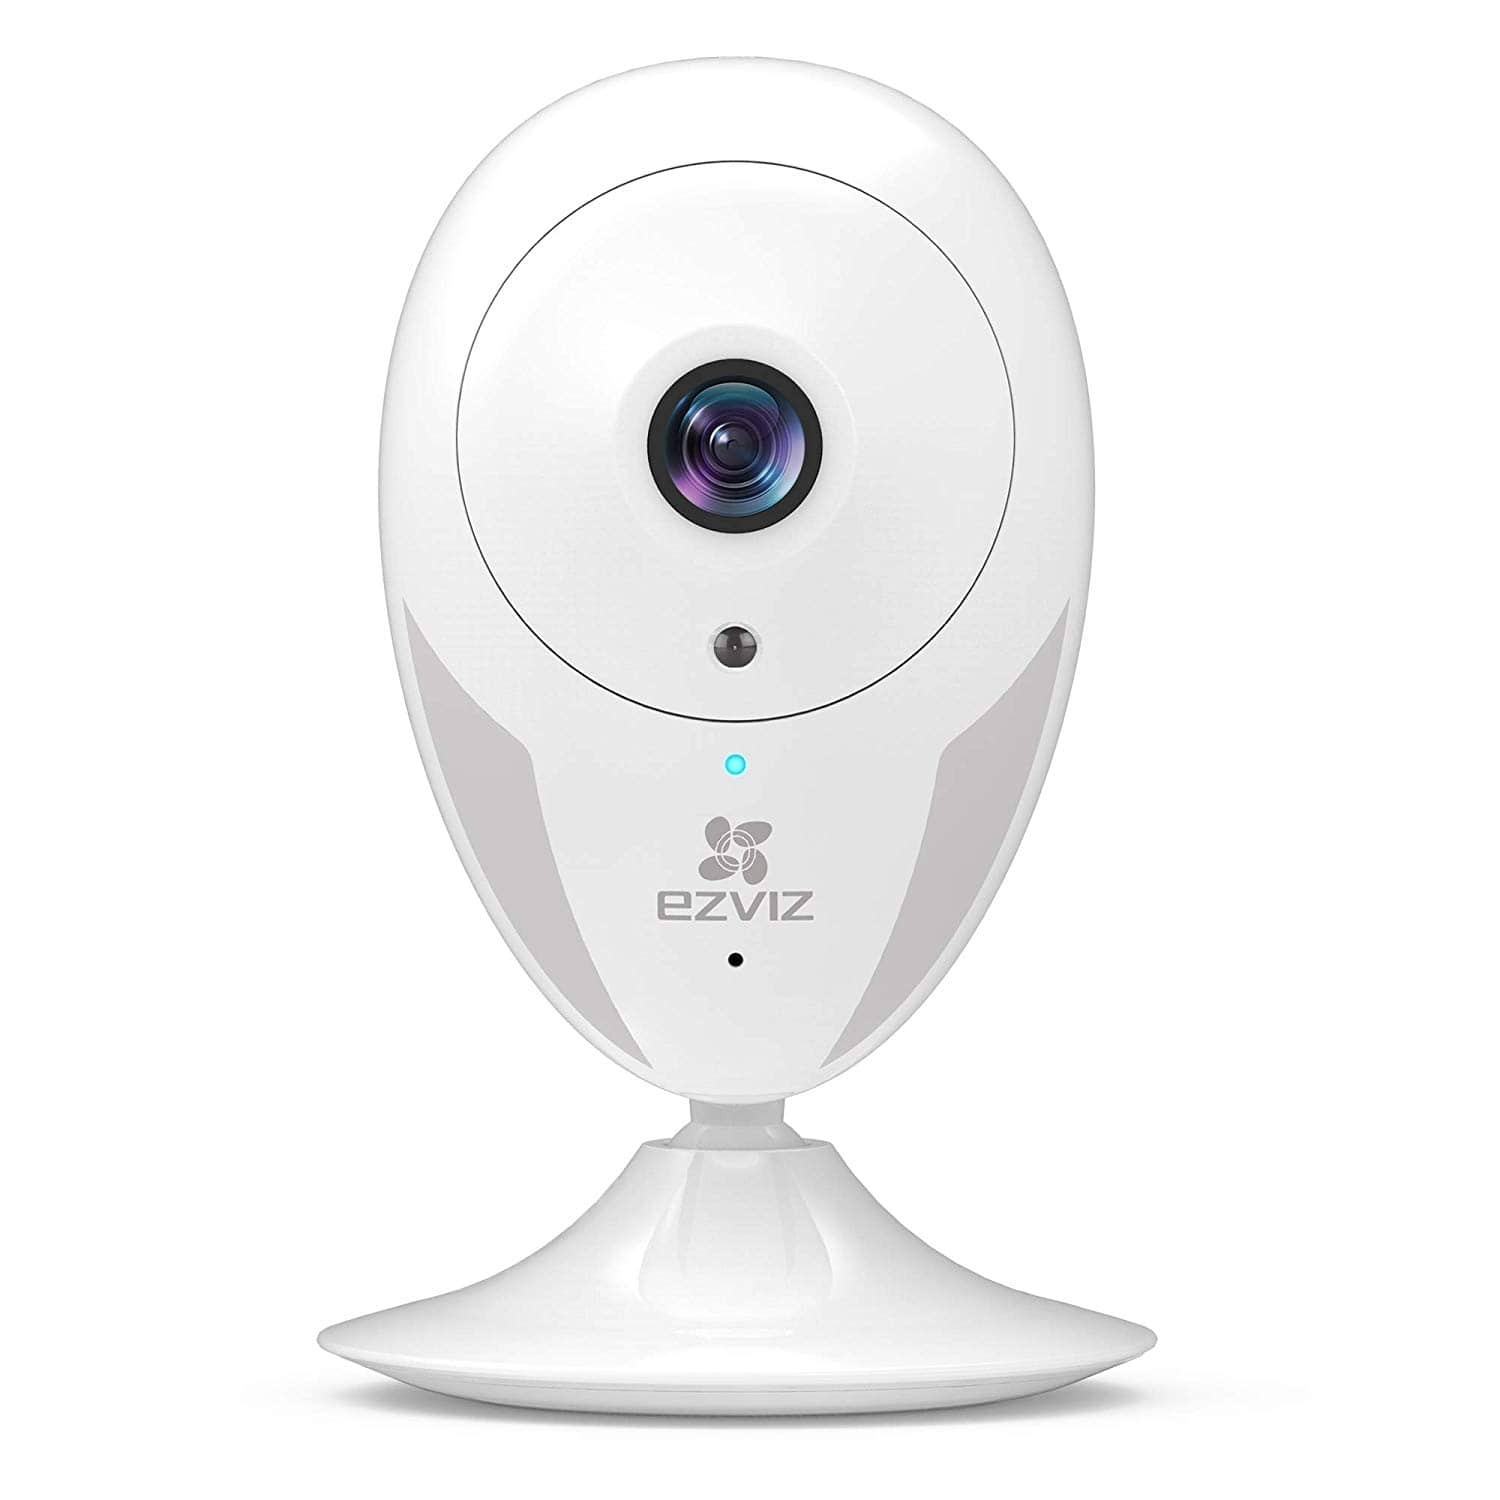 EZVIZ Indoor Wi-Fi Security Camera HD IPC Compatible with Alexa Google Home IFTTT 2.4G WiFi 25ft $18.89